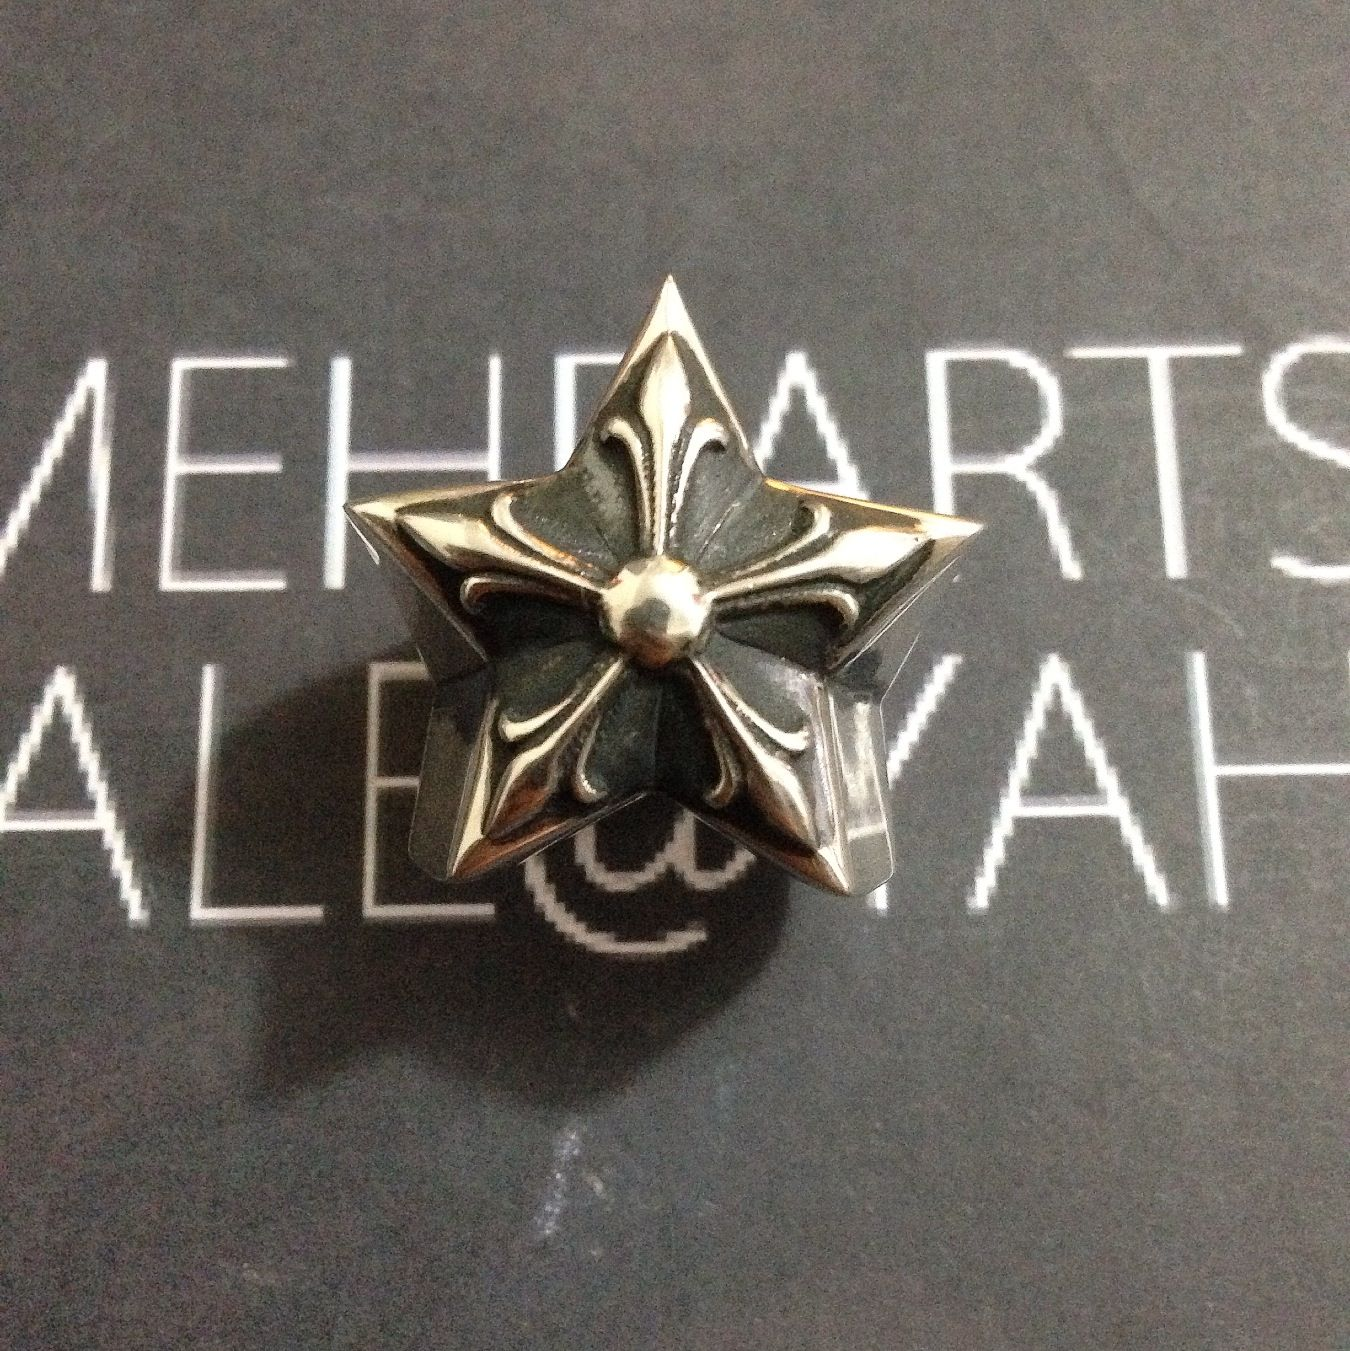 chrome hearts mega star ring www.chromeheartsexclusive.co #chromehearts #chromeheart#chromeheartsexclusive#chromeheartsrings #chromeheartsbracelet #chromeheartsnecklace #chromeheartsonlinestore #chromeheartsonline buy #chromeheartsauthentic #chromeheartsvancouver #chromeheartscanada #chromeheartsclothing chromehartsearrings  #chromeheartspendant #chromeheartsring